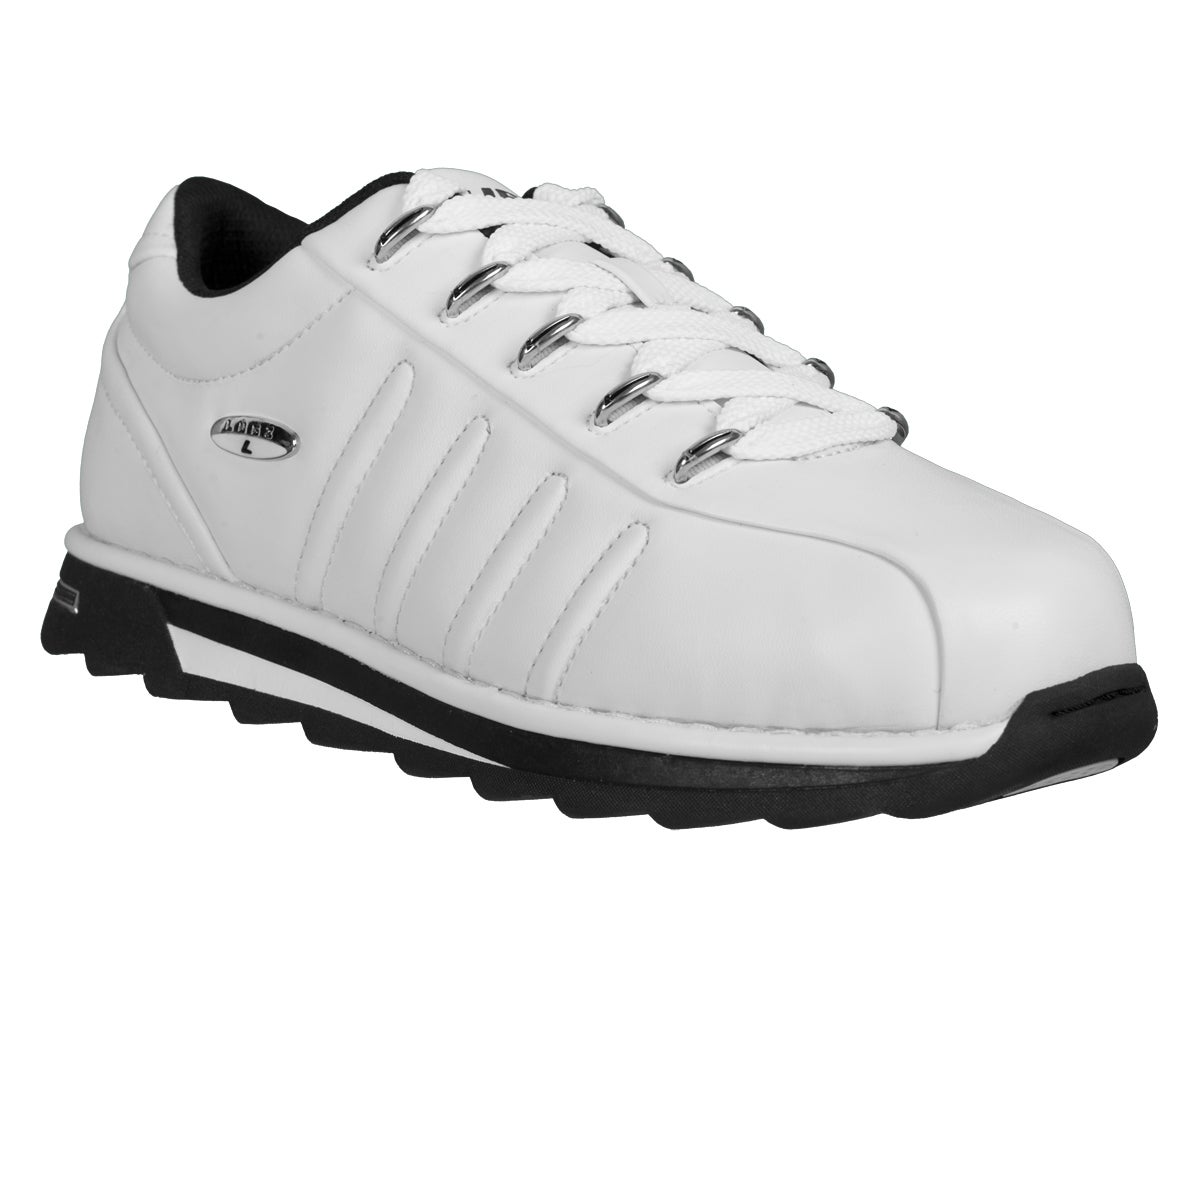 Lugz Men's 'Changeover' White Sneakers